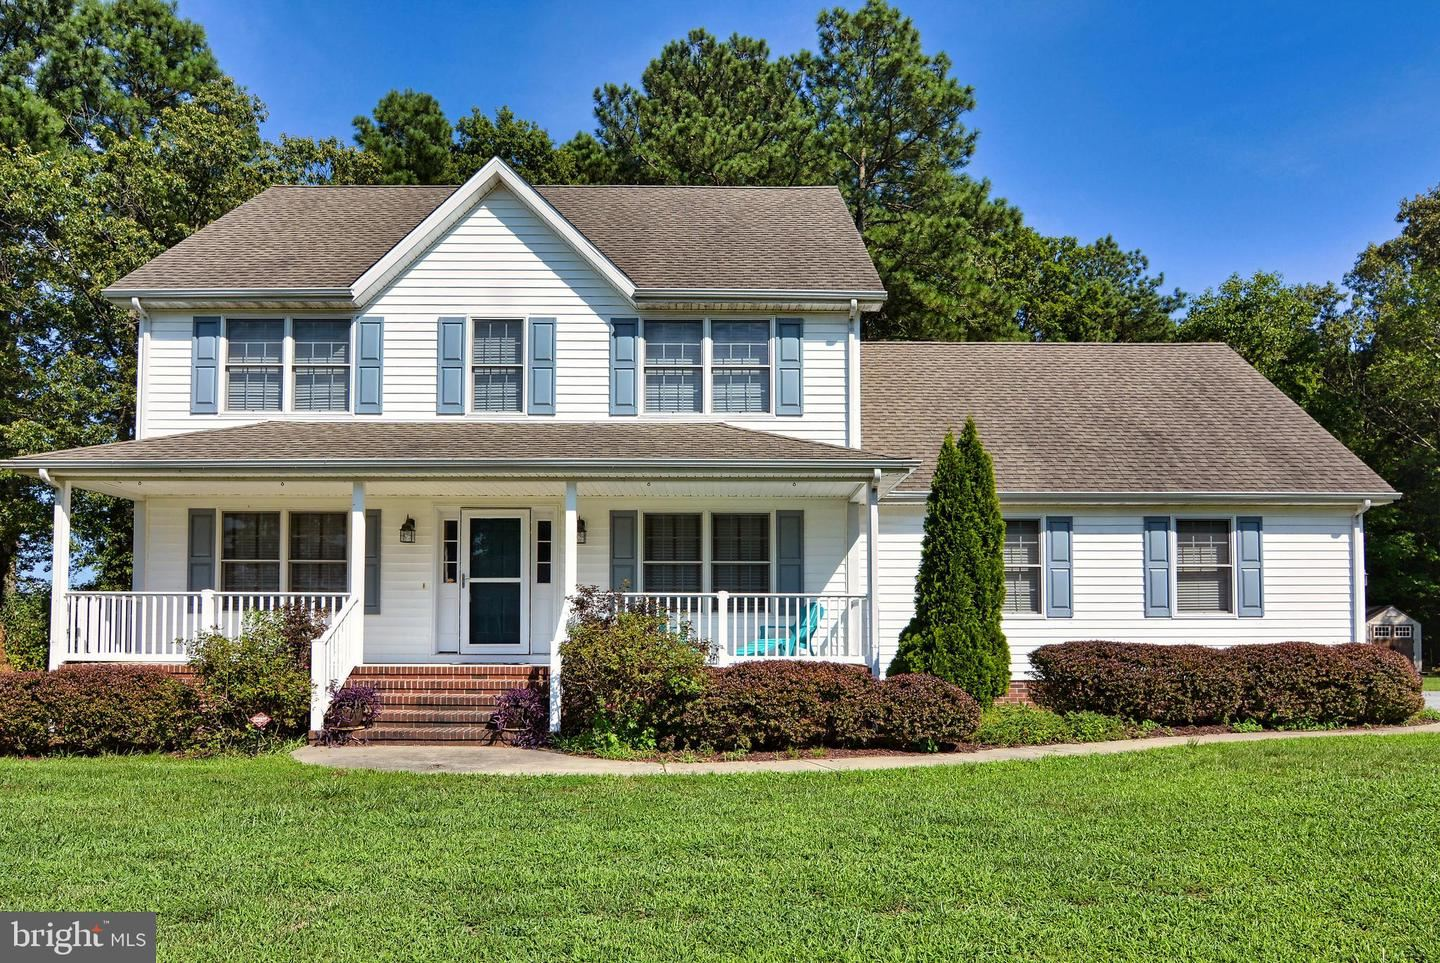 Photo of 4809 CANVASBACK DR, CAMBRIDGE, MD 21613 (MLS # MDDO125776)